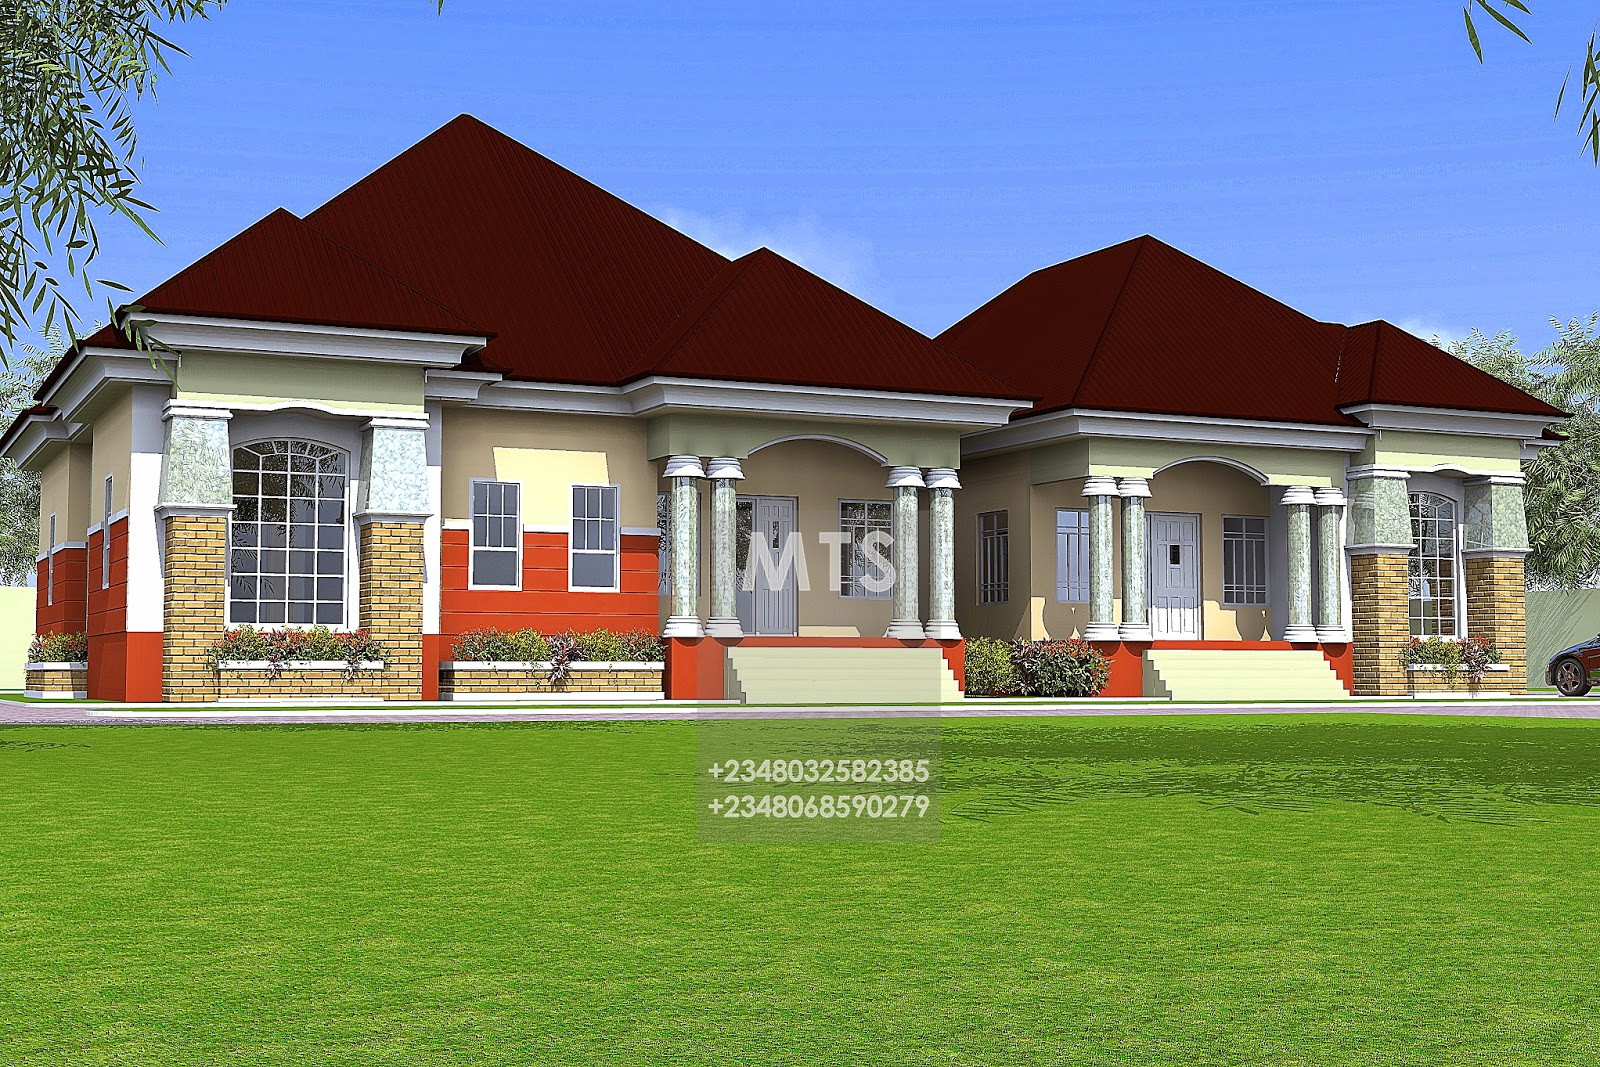 Residential homes and public designs for 3 rooms bungalow house